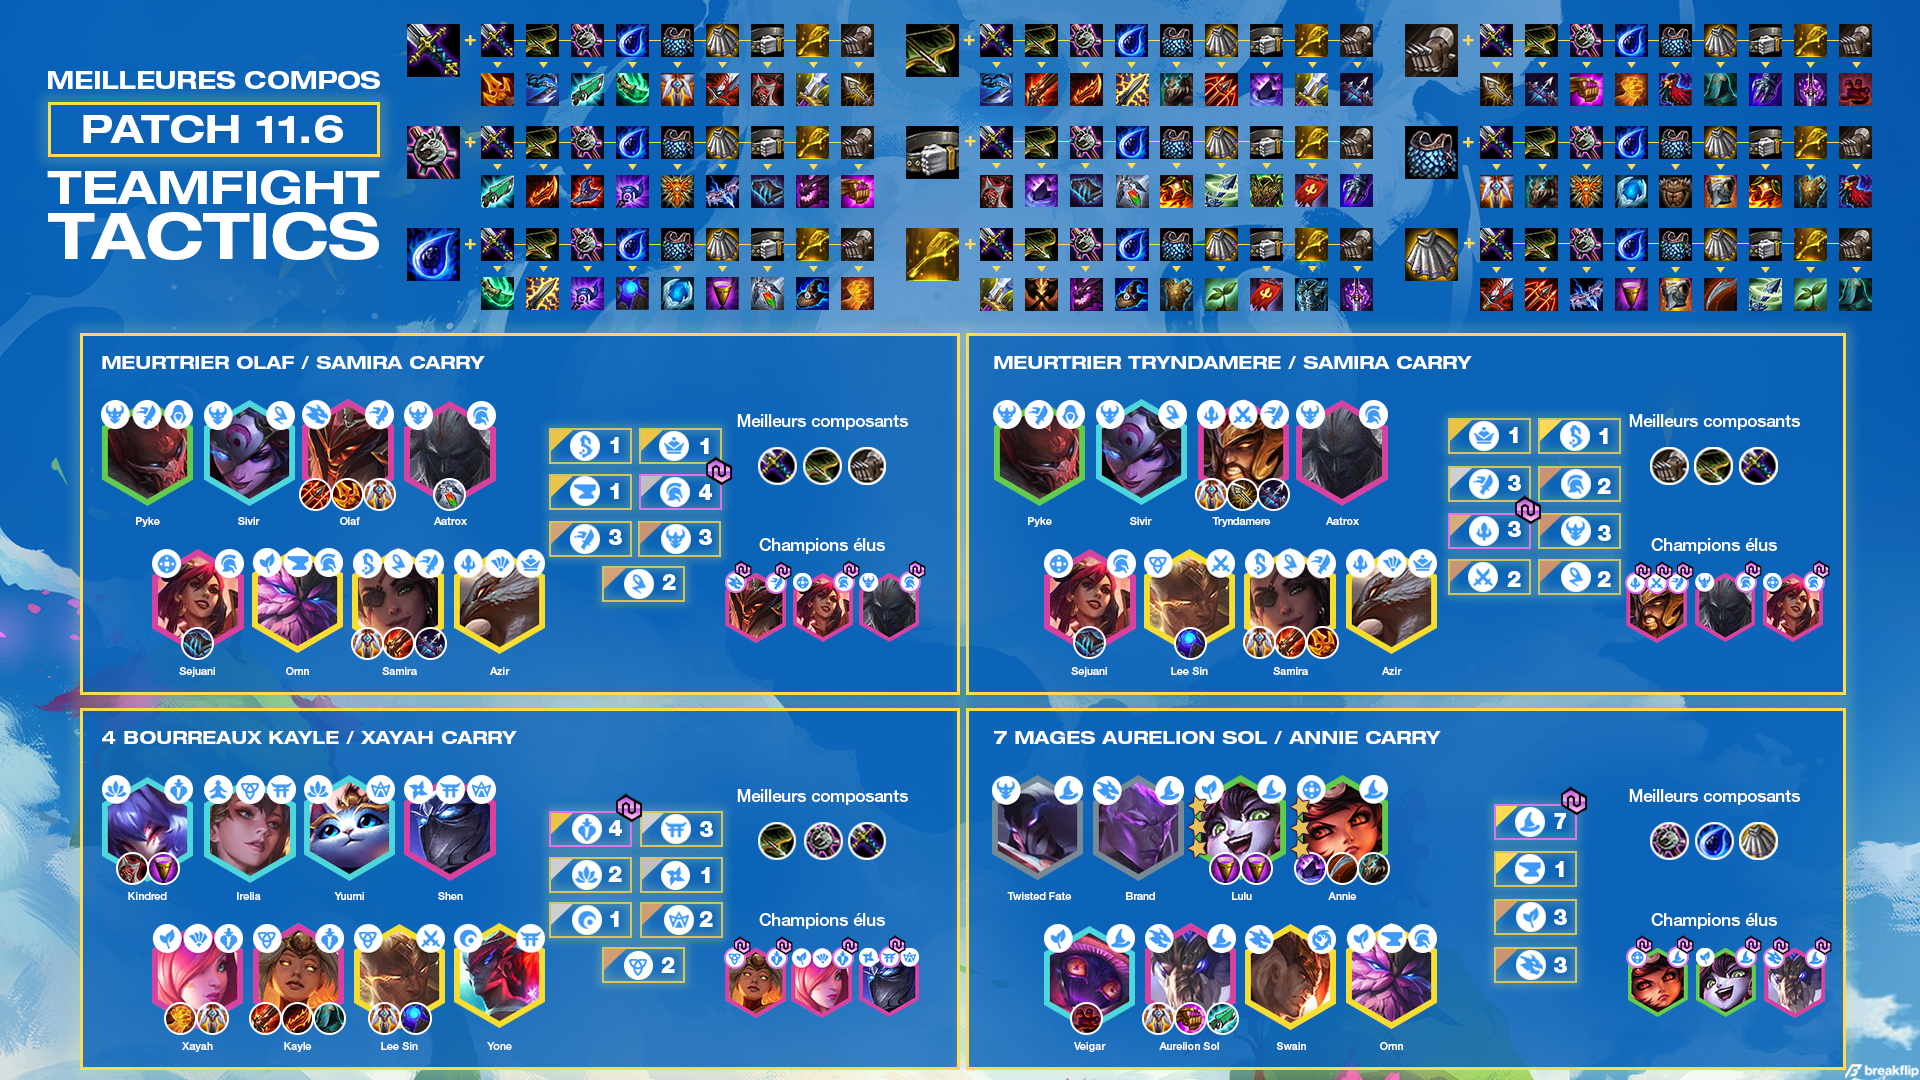 TFT-Cheat-Sheet-Compo-Patch-11.6